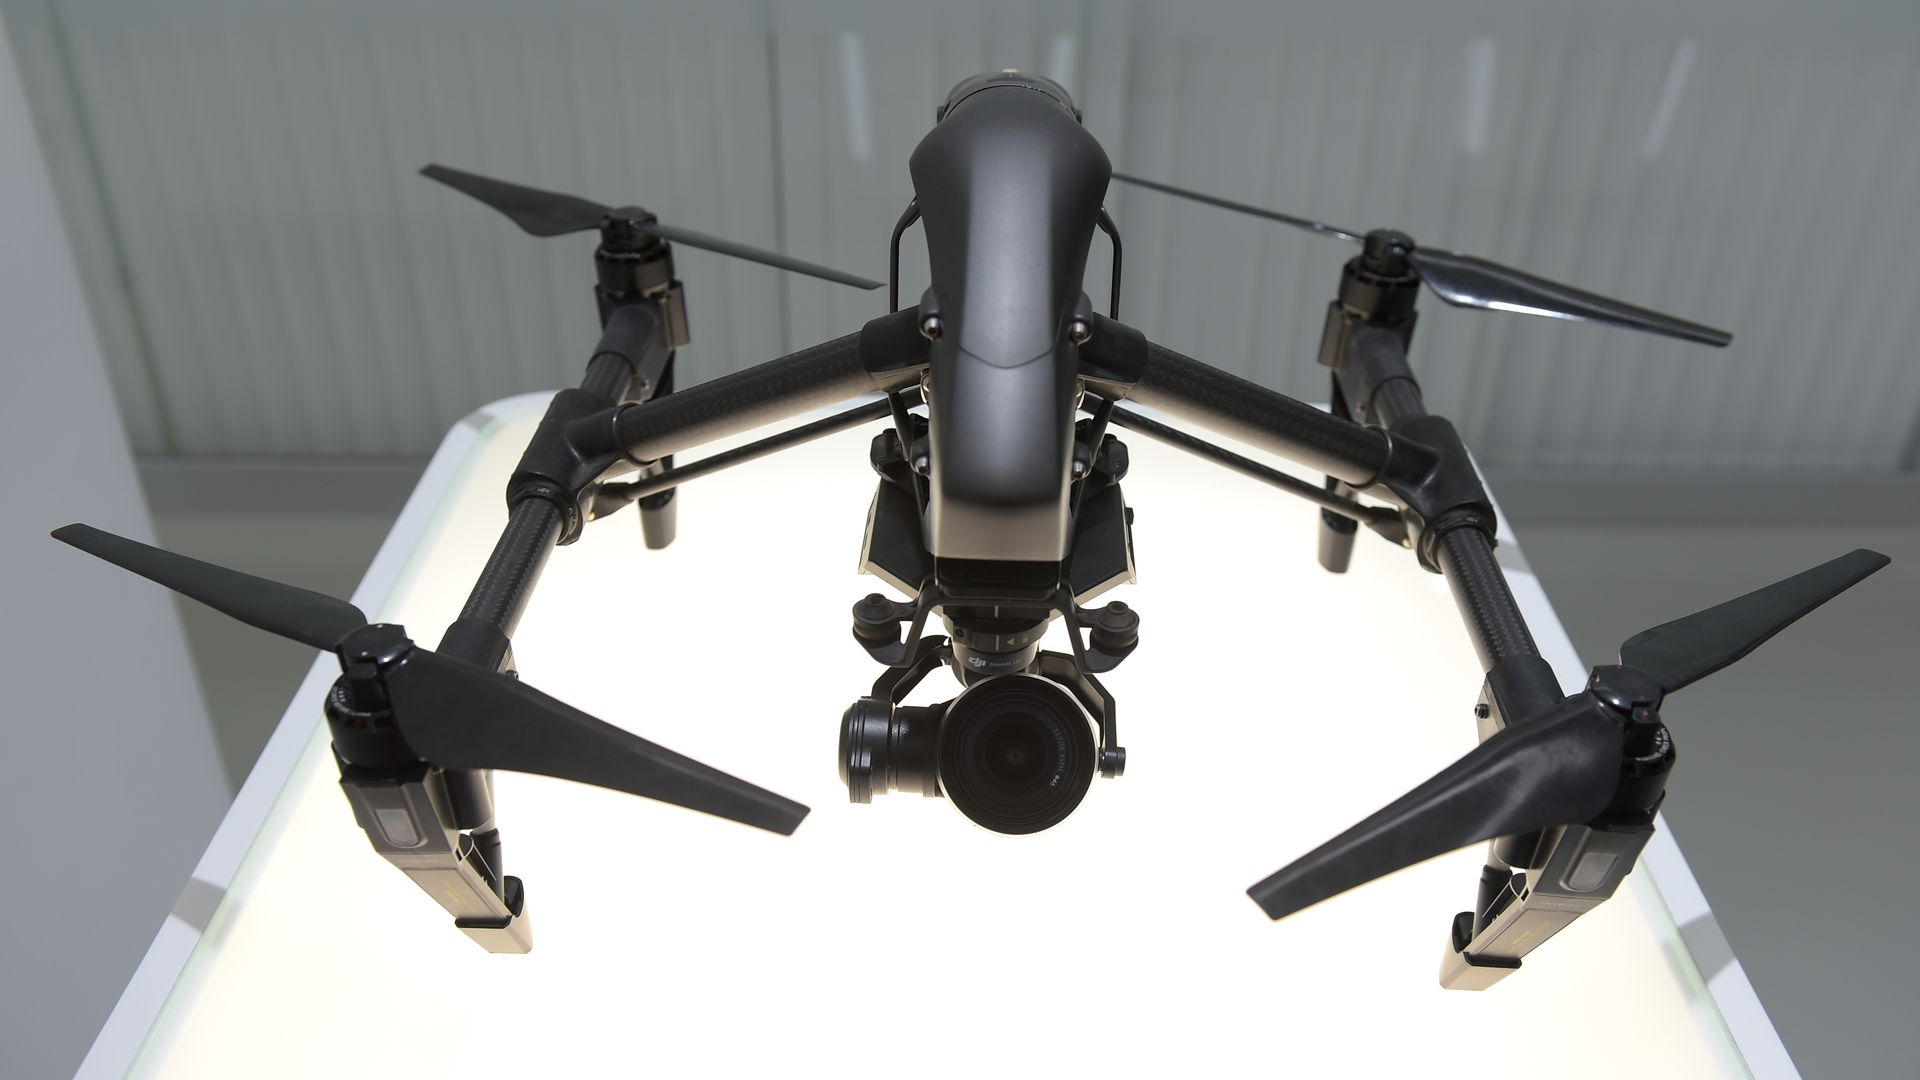 black commercial quadcopter drone, sitting on pedestal